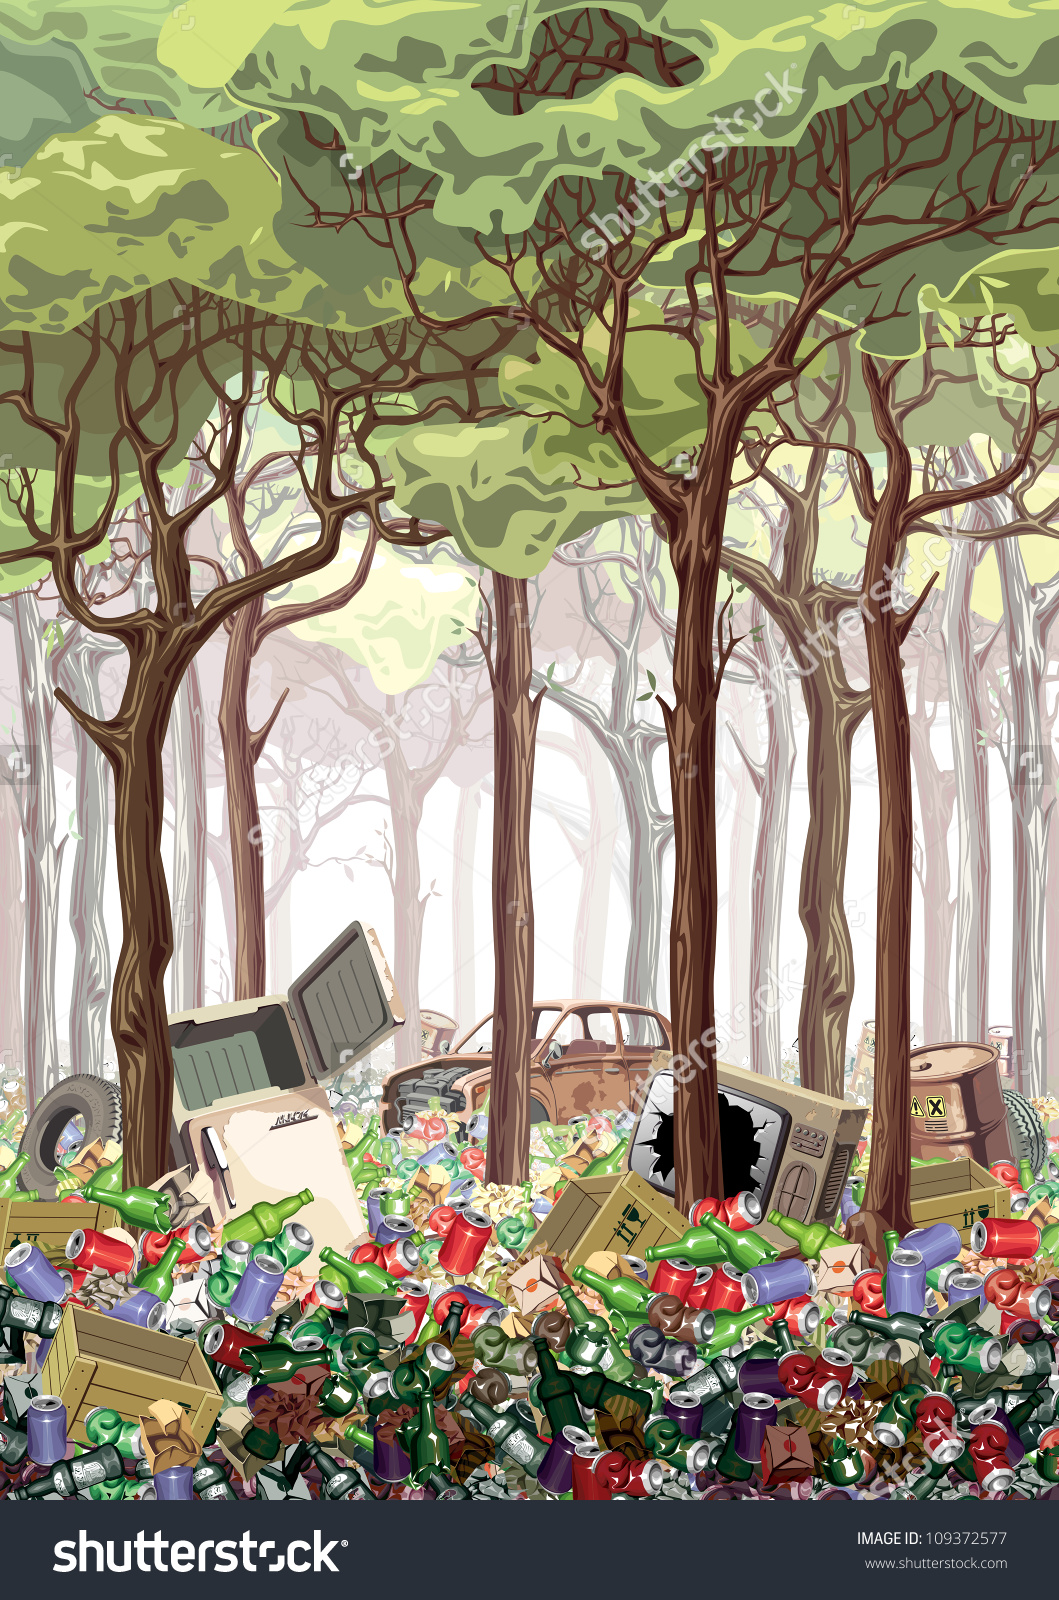 This Work About Industrial Nature Pollution Stock Illustration.